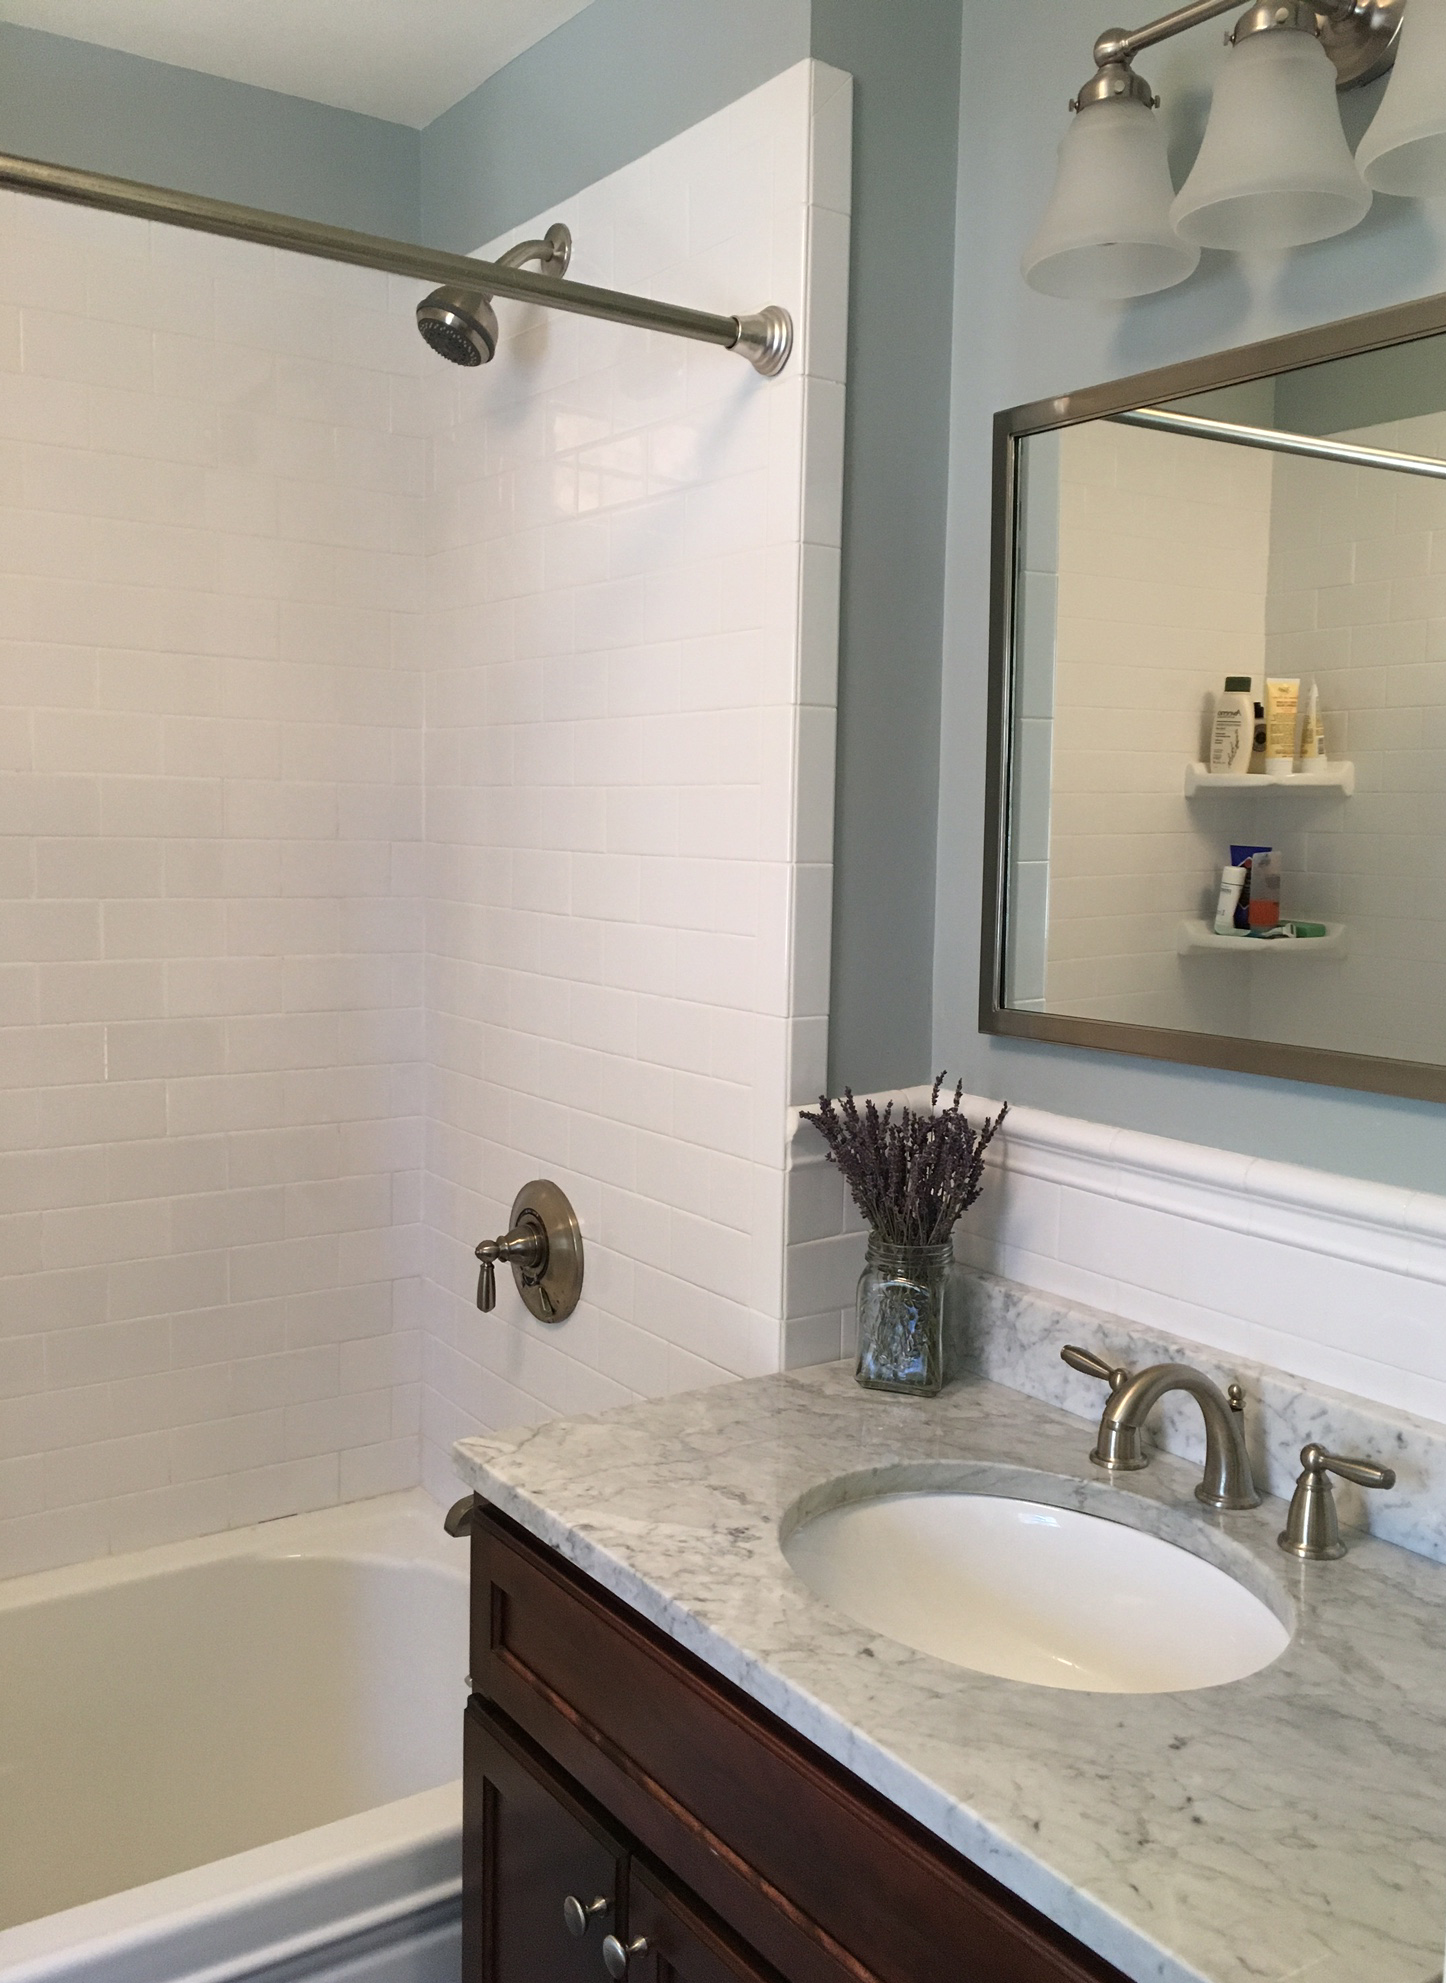 Bathroom Lights Homebase Cool 60 Bathroom Remodeling Newport News Va Decorating Desi Ceiling